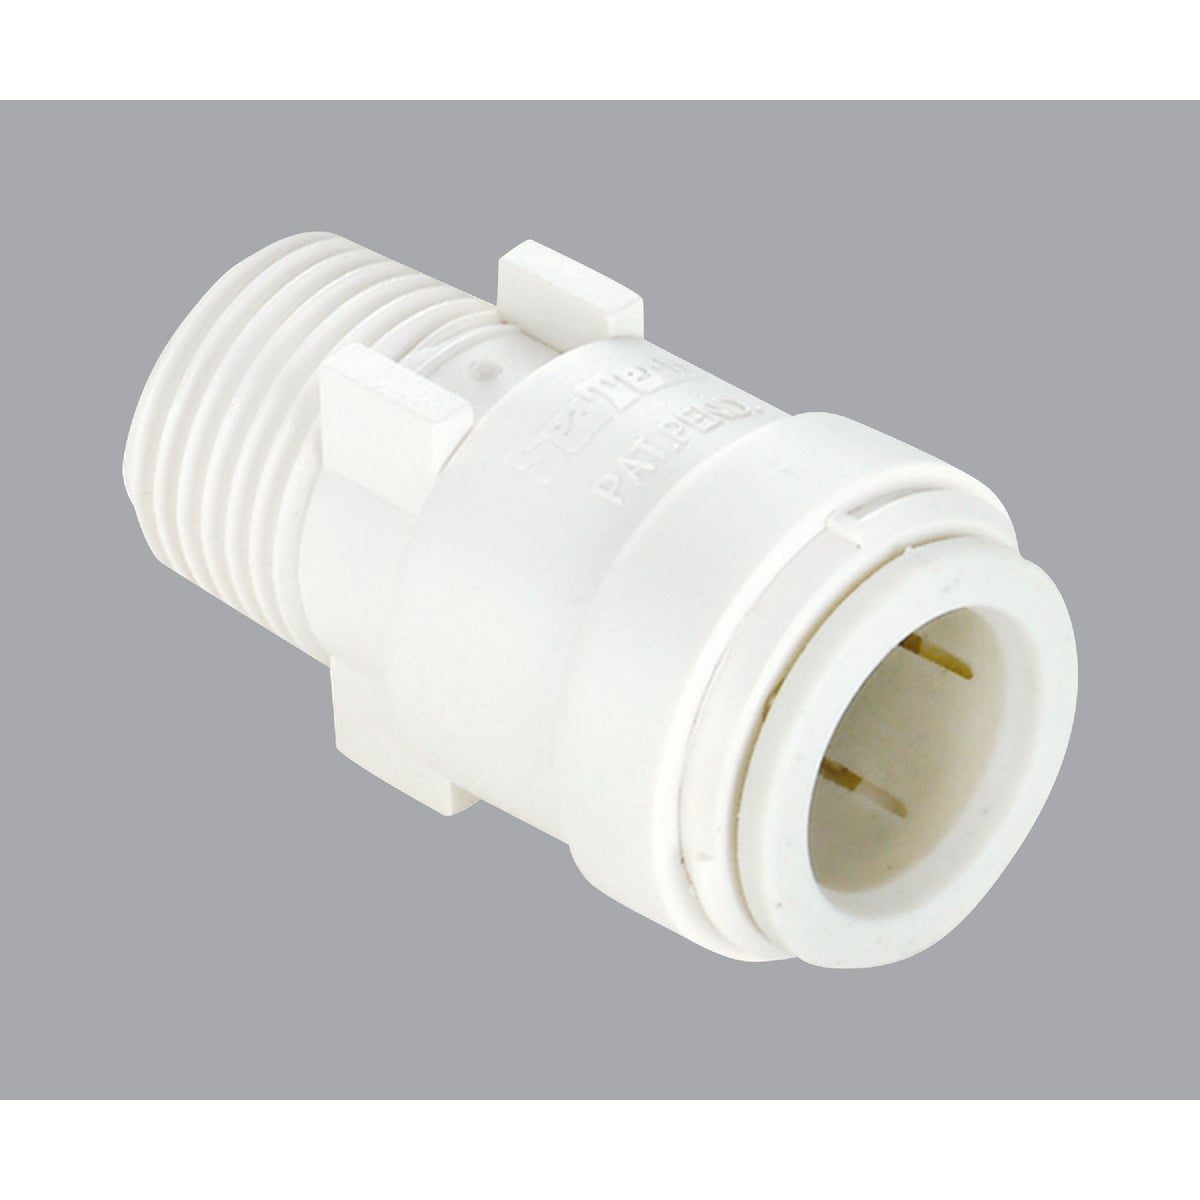 3/4CTSX3/4MPT ADAPTER - P-810 by Watts Pex